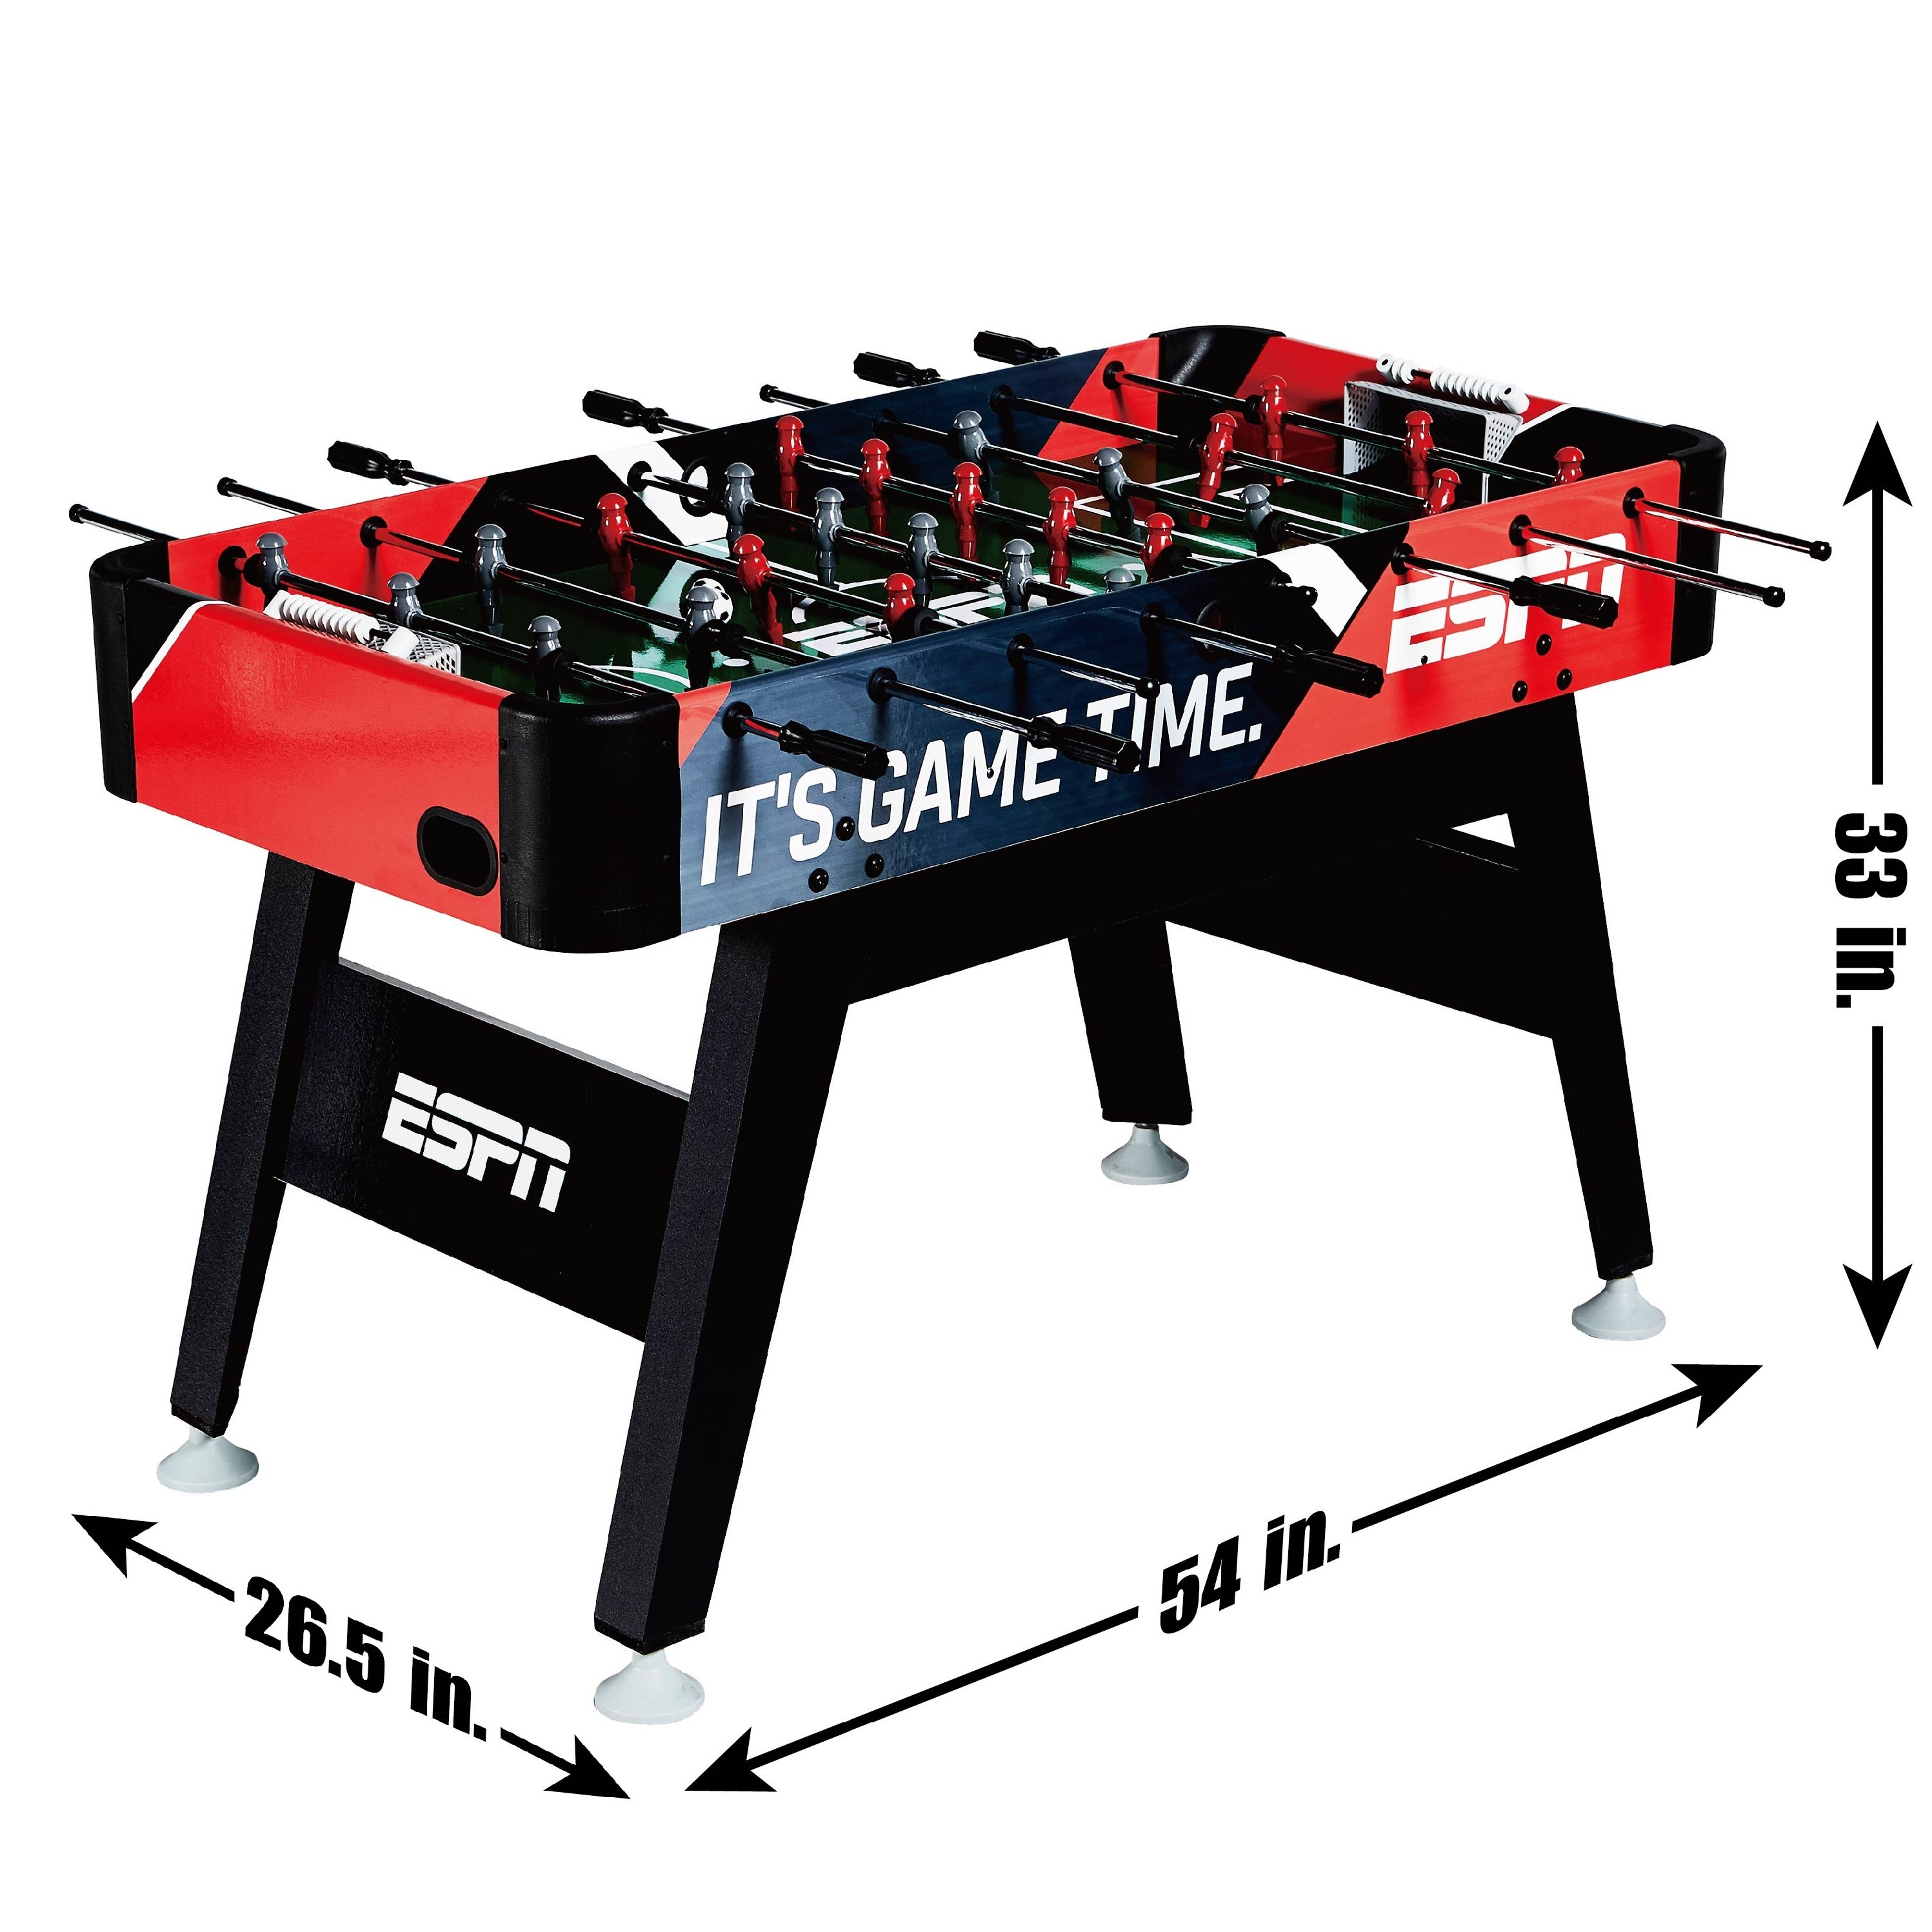 espn 54 arcade foosball soccer game table with bead scoring accessories included red black